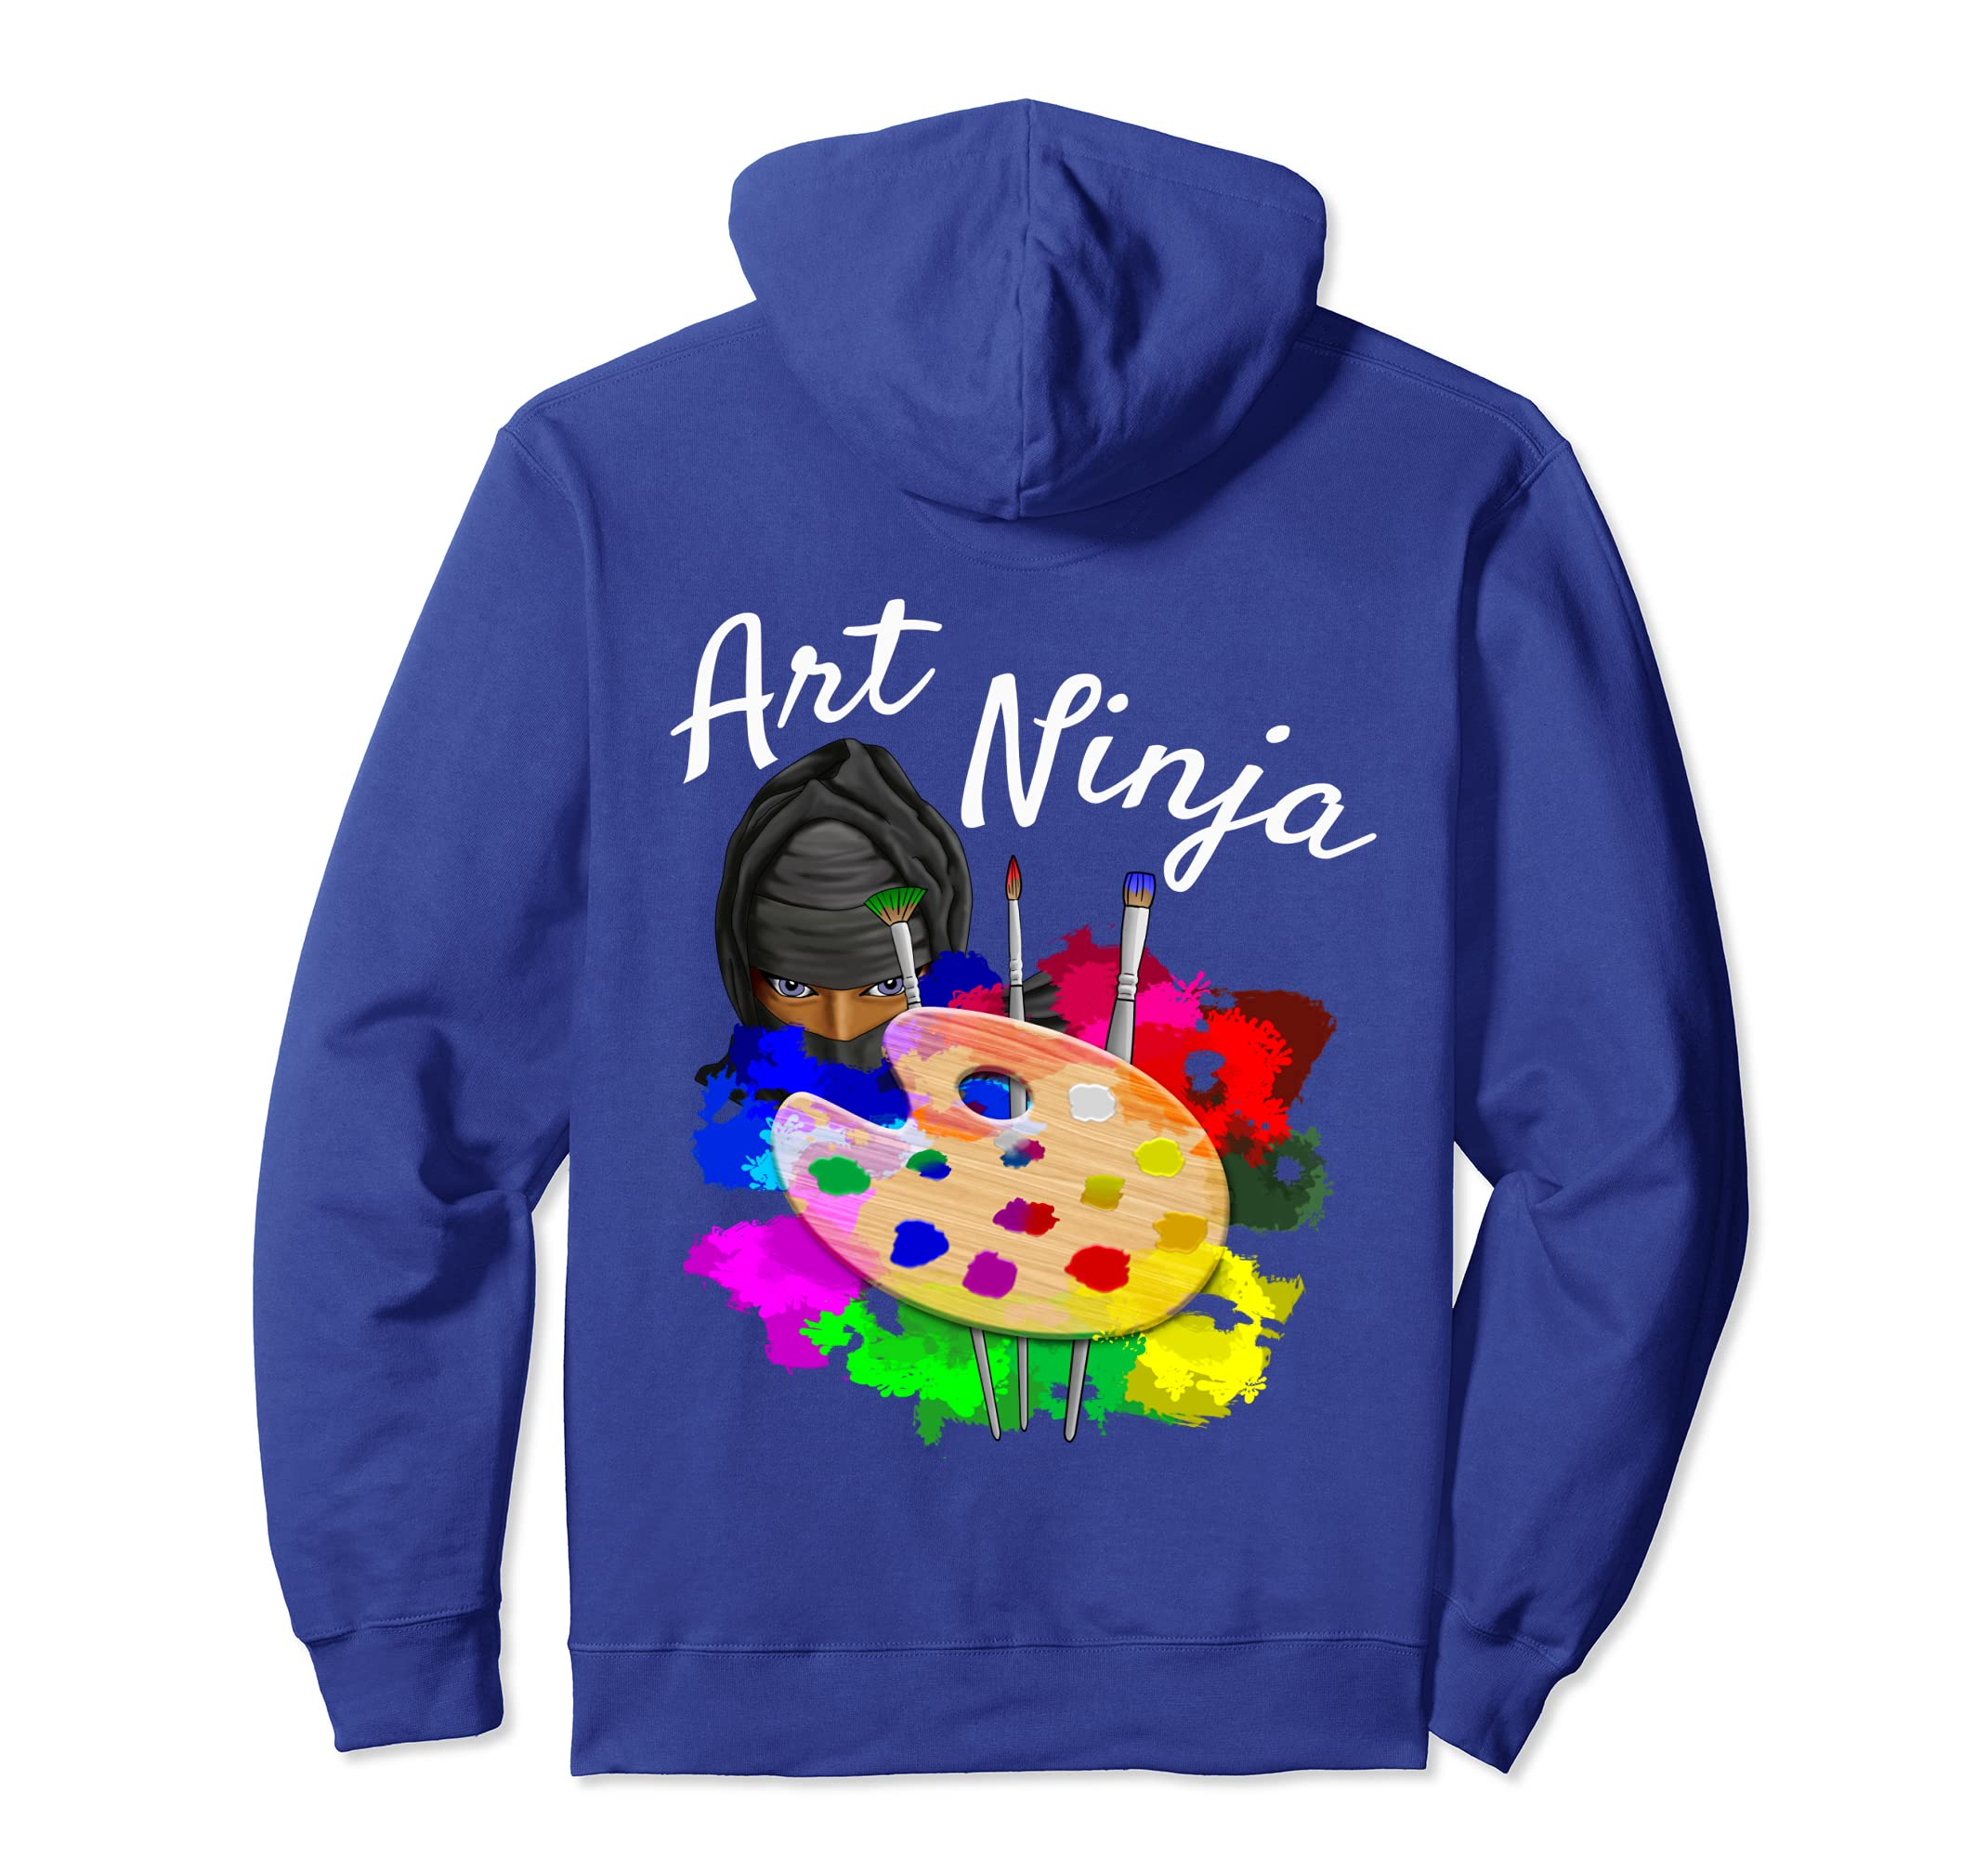 Amazon.com: Art Ninja Artist Pullover Hoodie: Clothing